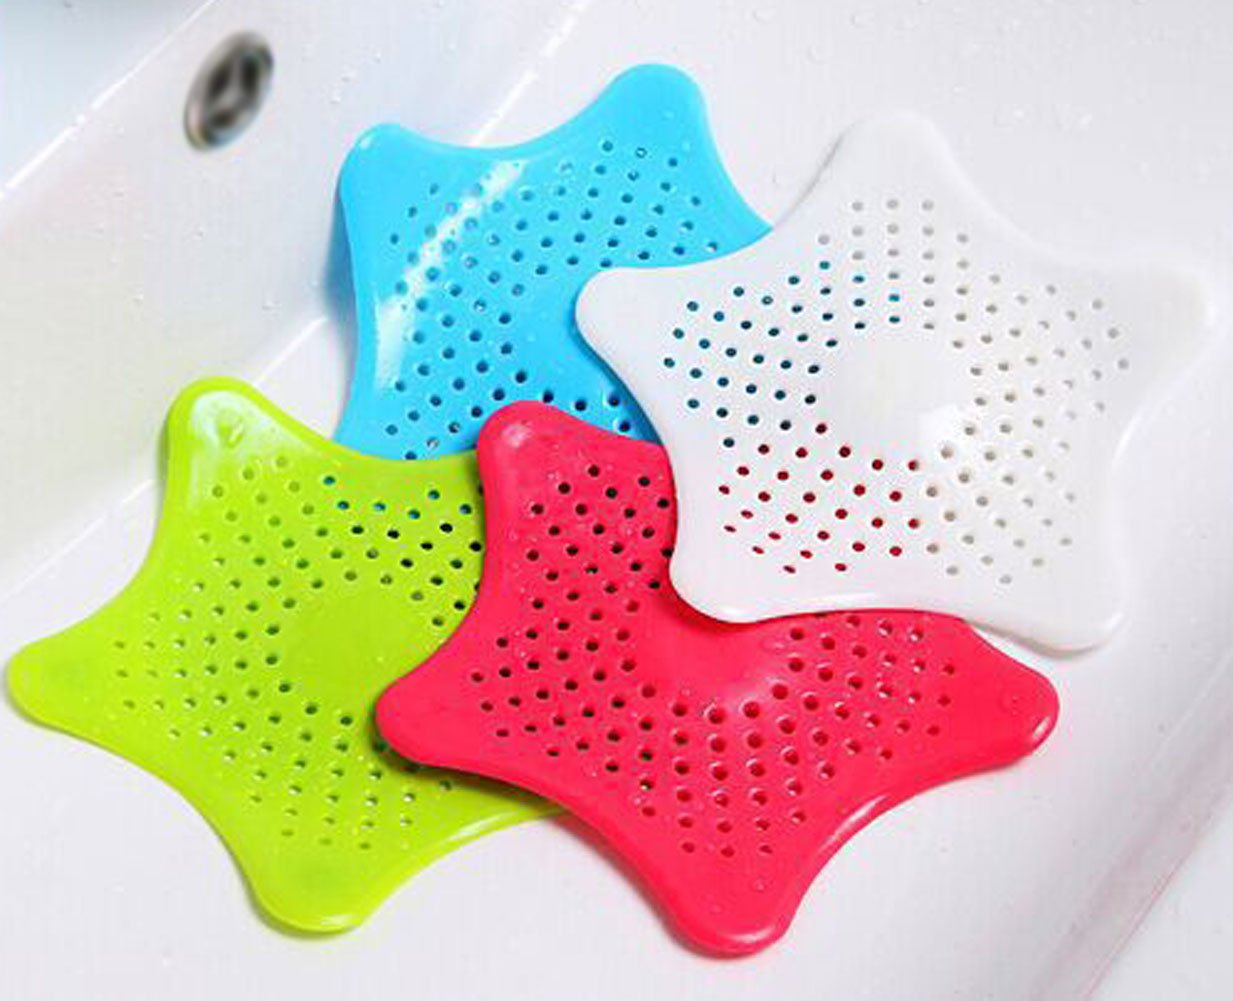 Hair Catcher Starfish Drain Cover Waste Filter Drain Protector Shape With Sucker Cup -4 pieces AISHNE